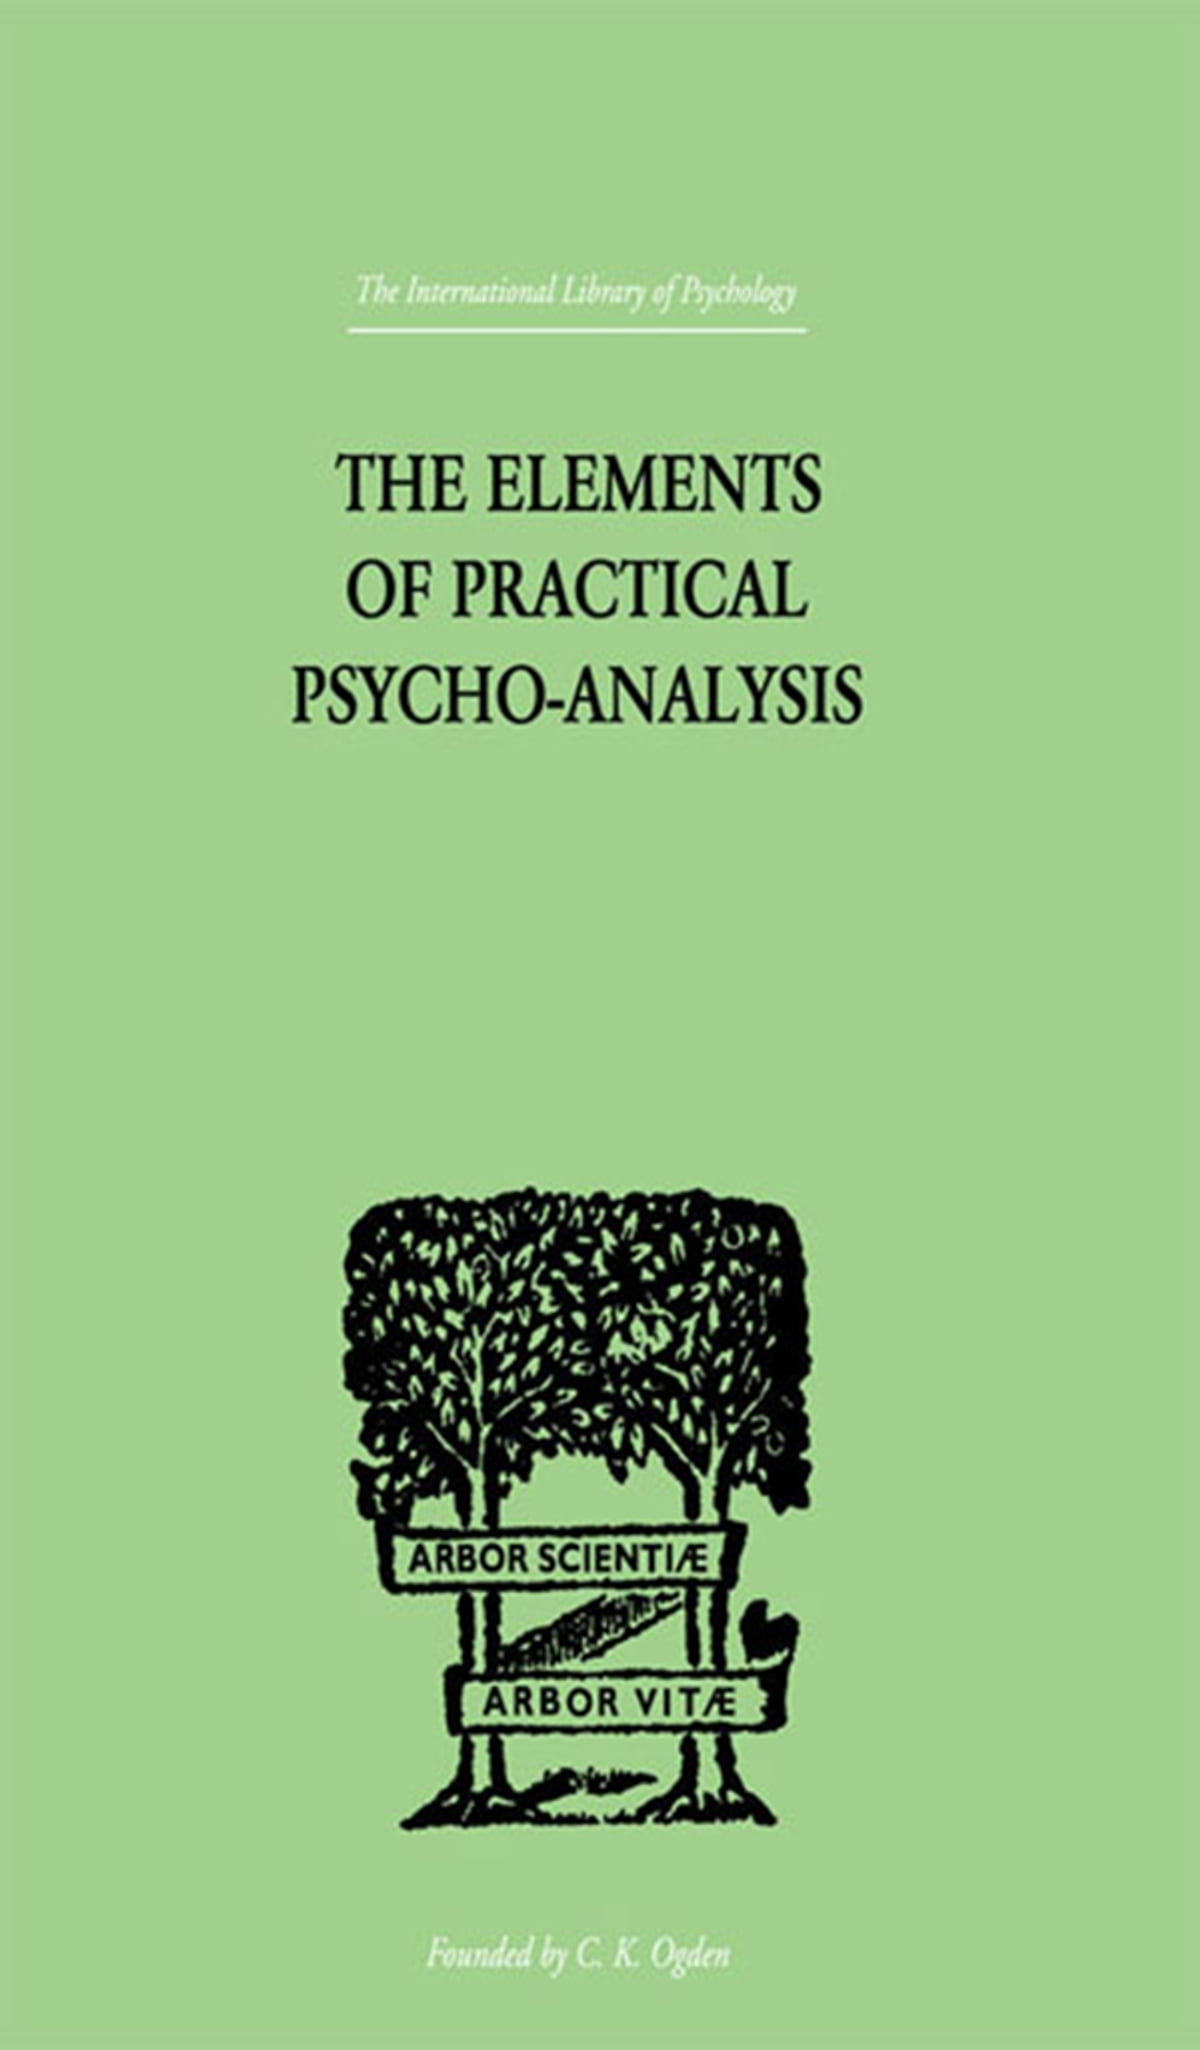 Elements of psycho-analysis